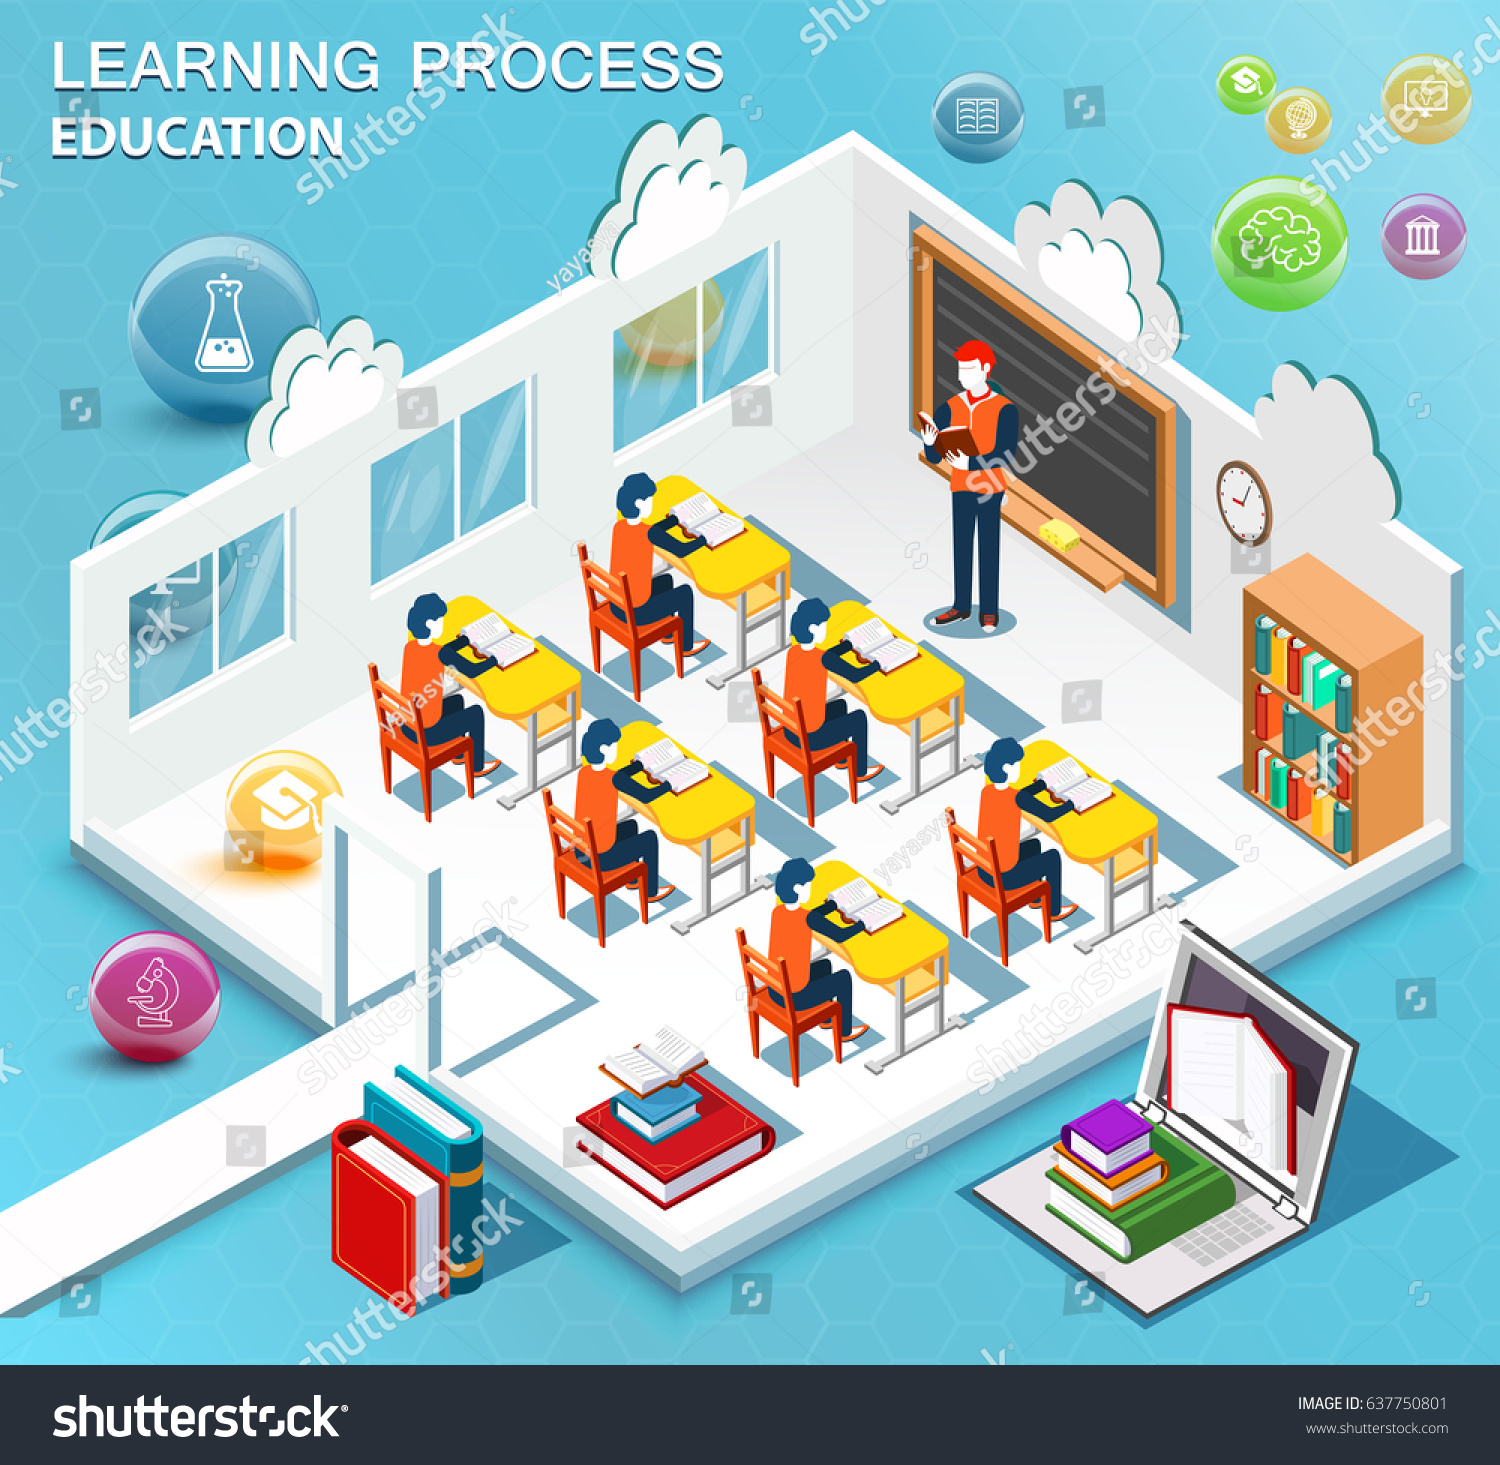 Classroom Design Study ~ Pupils study classroom concept learning isometric stock